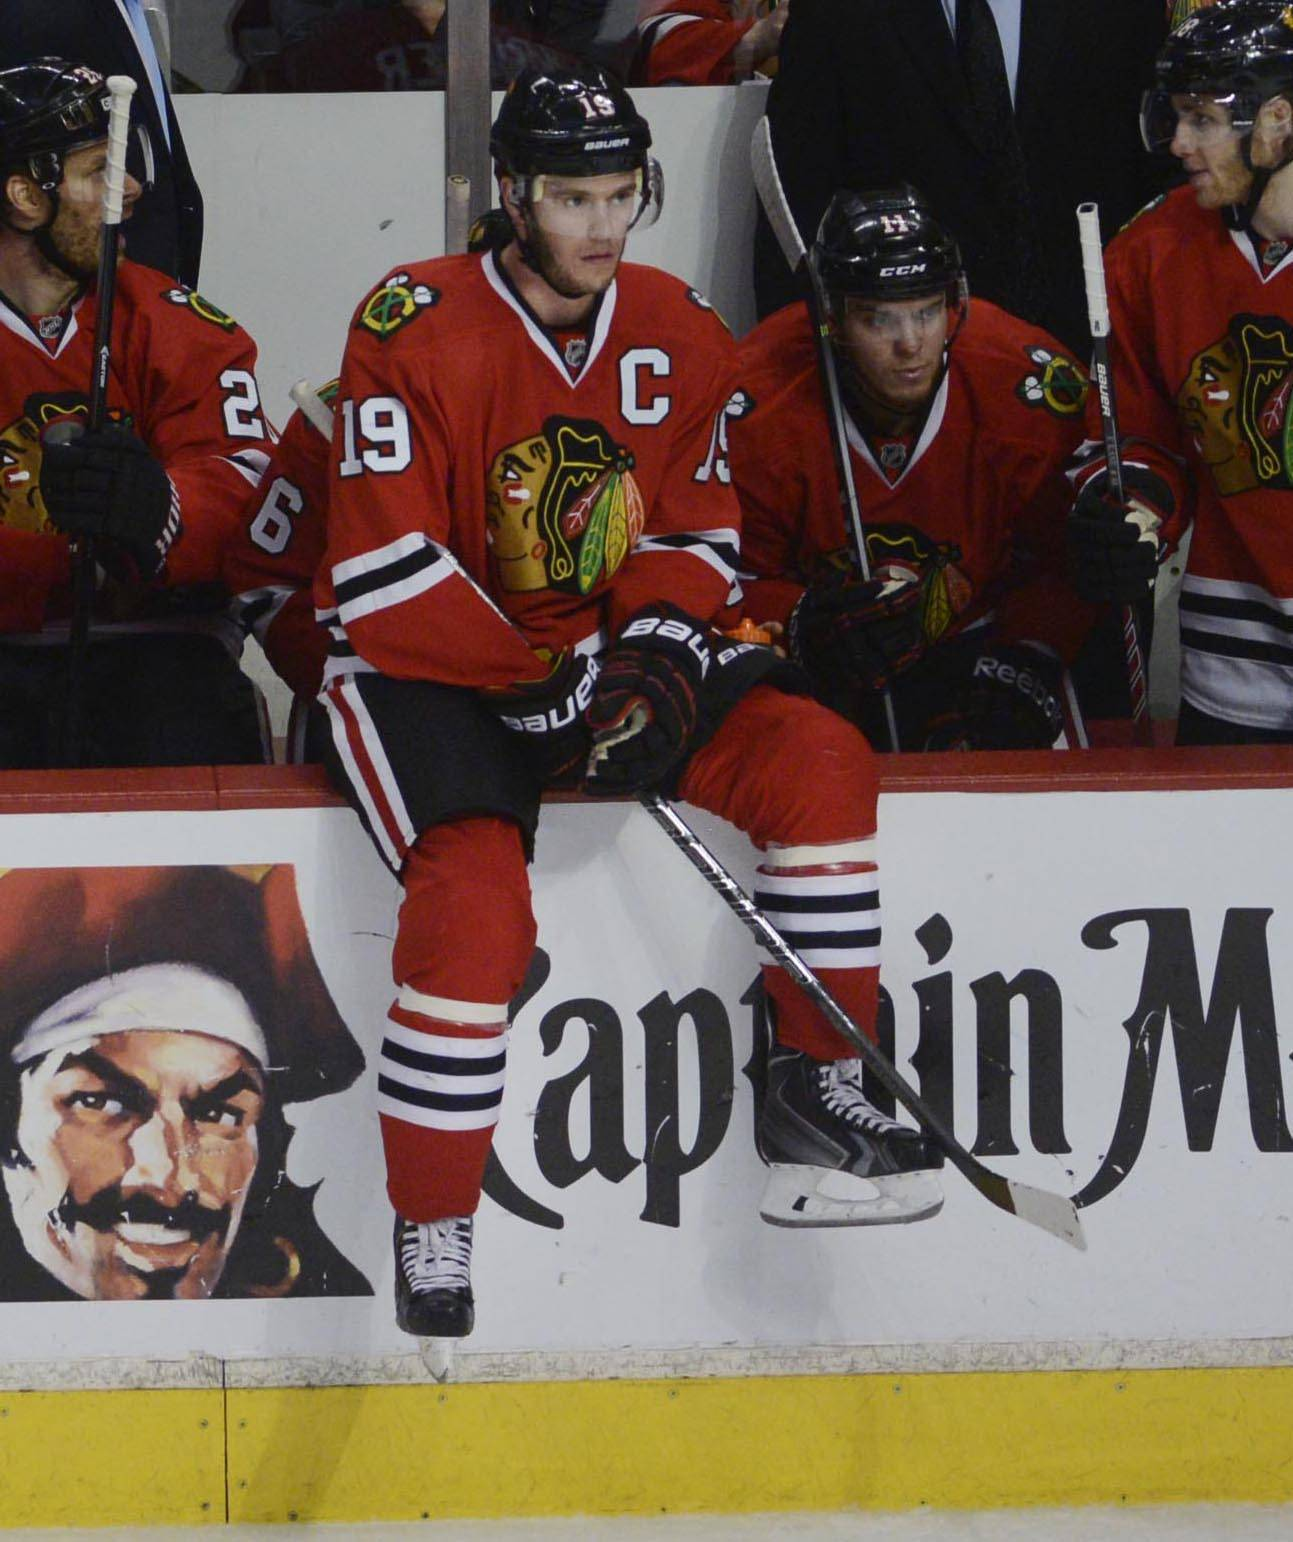 Chicago Blackhawks captain Jonathan Toews sits on the board in front of his bench during a time out against the Minnesota Wild.